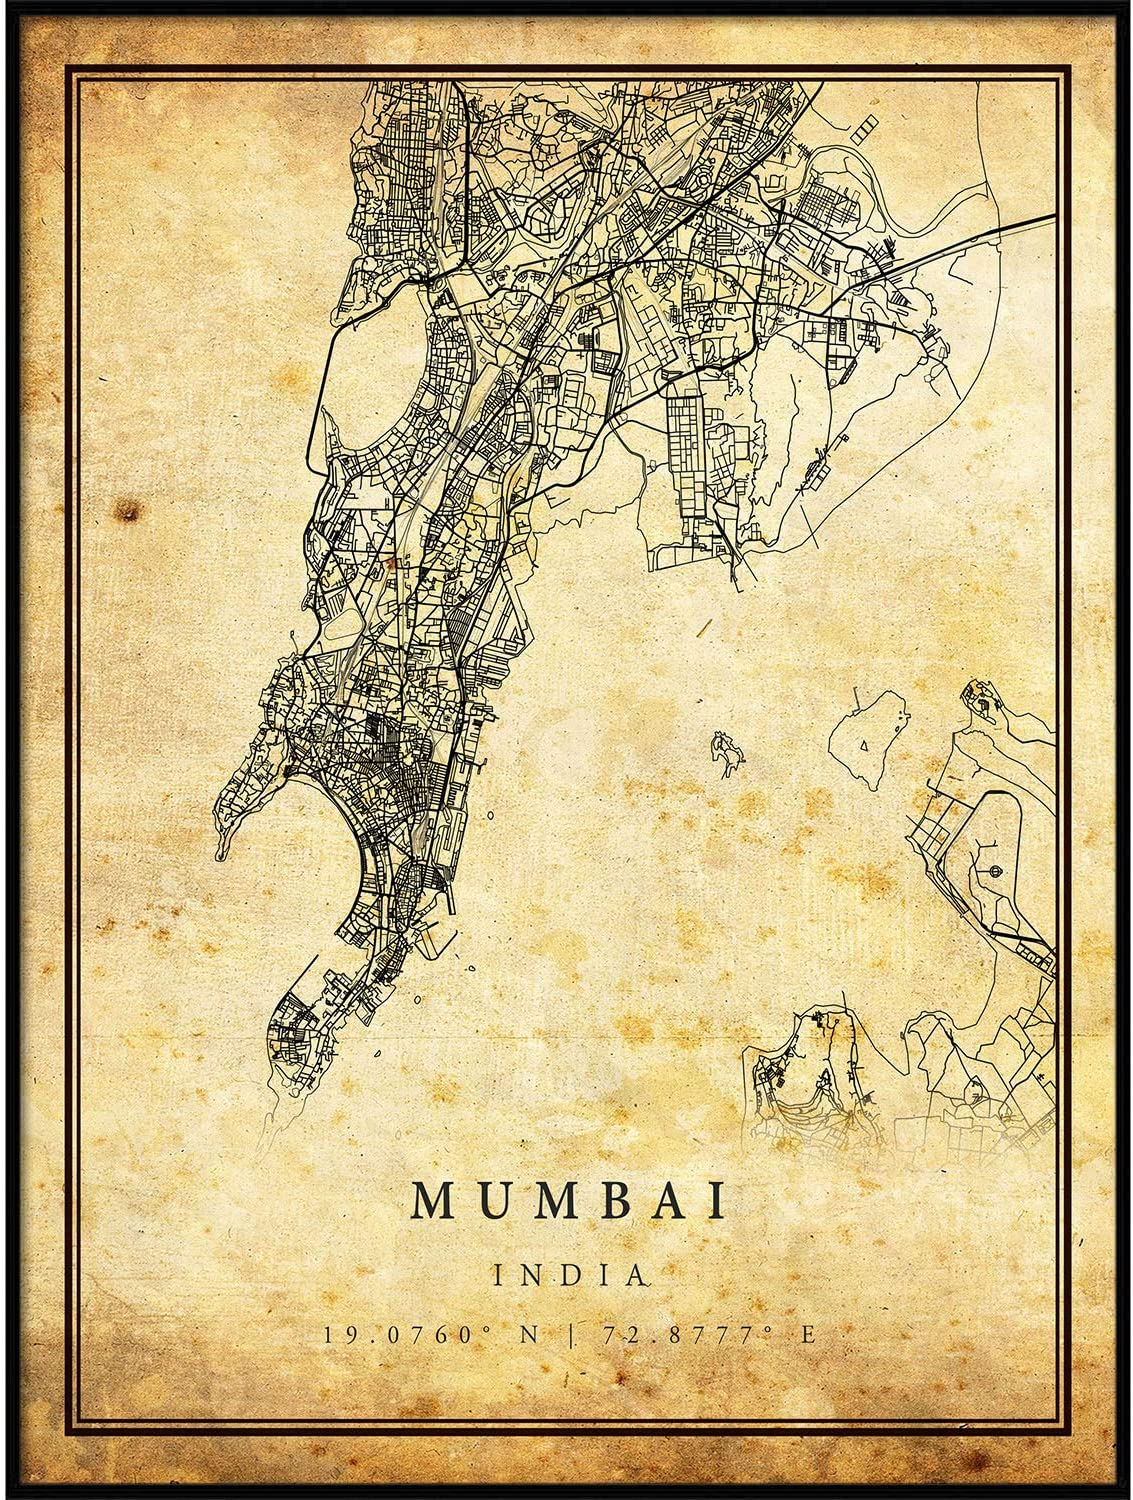 Mumbai map Vintage Style Poster Print | Old City Artwork Prints | Antique Style Home Decor | India Wall Art Gift | Old map Art 24x36